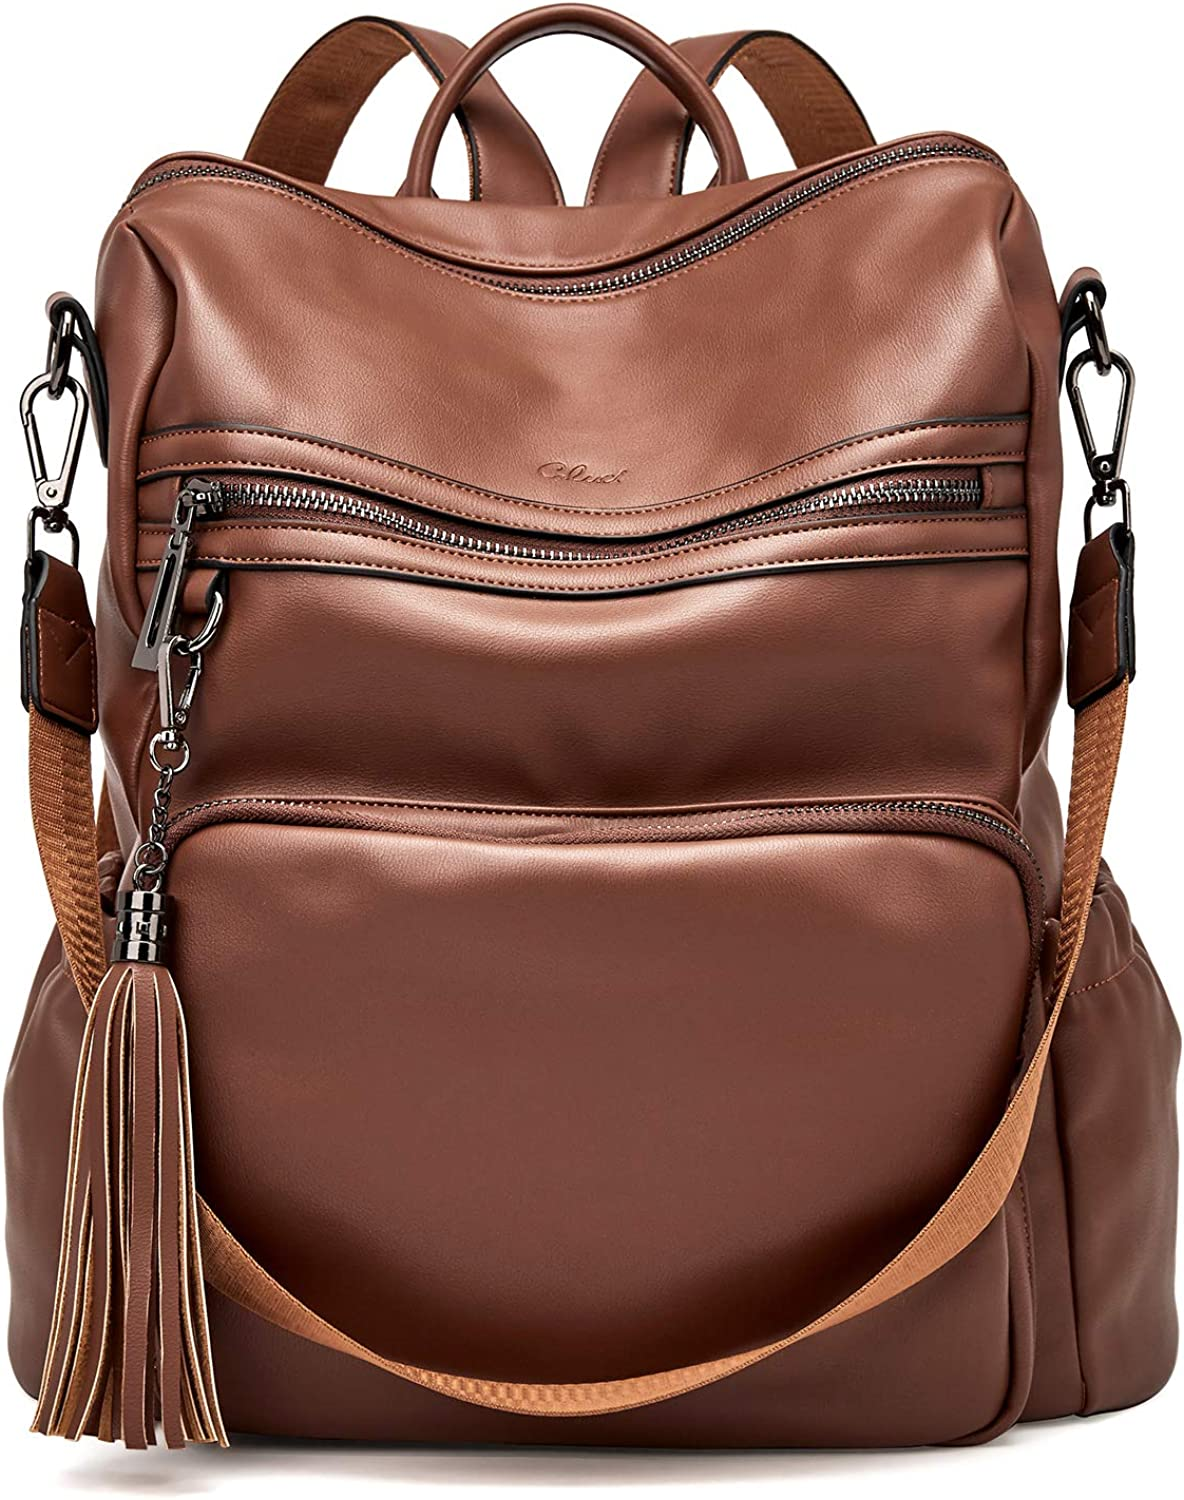 Top 7 Women's Laptop Backpack Designer